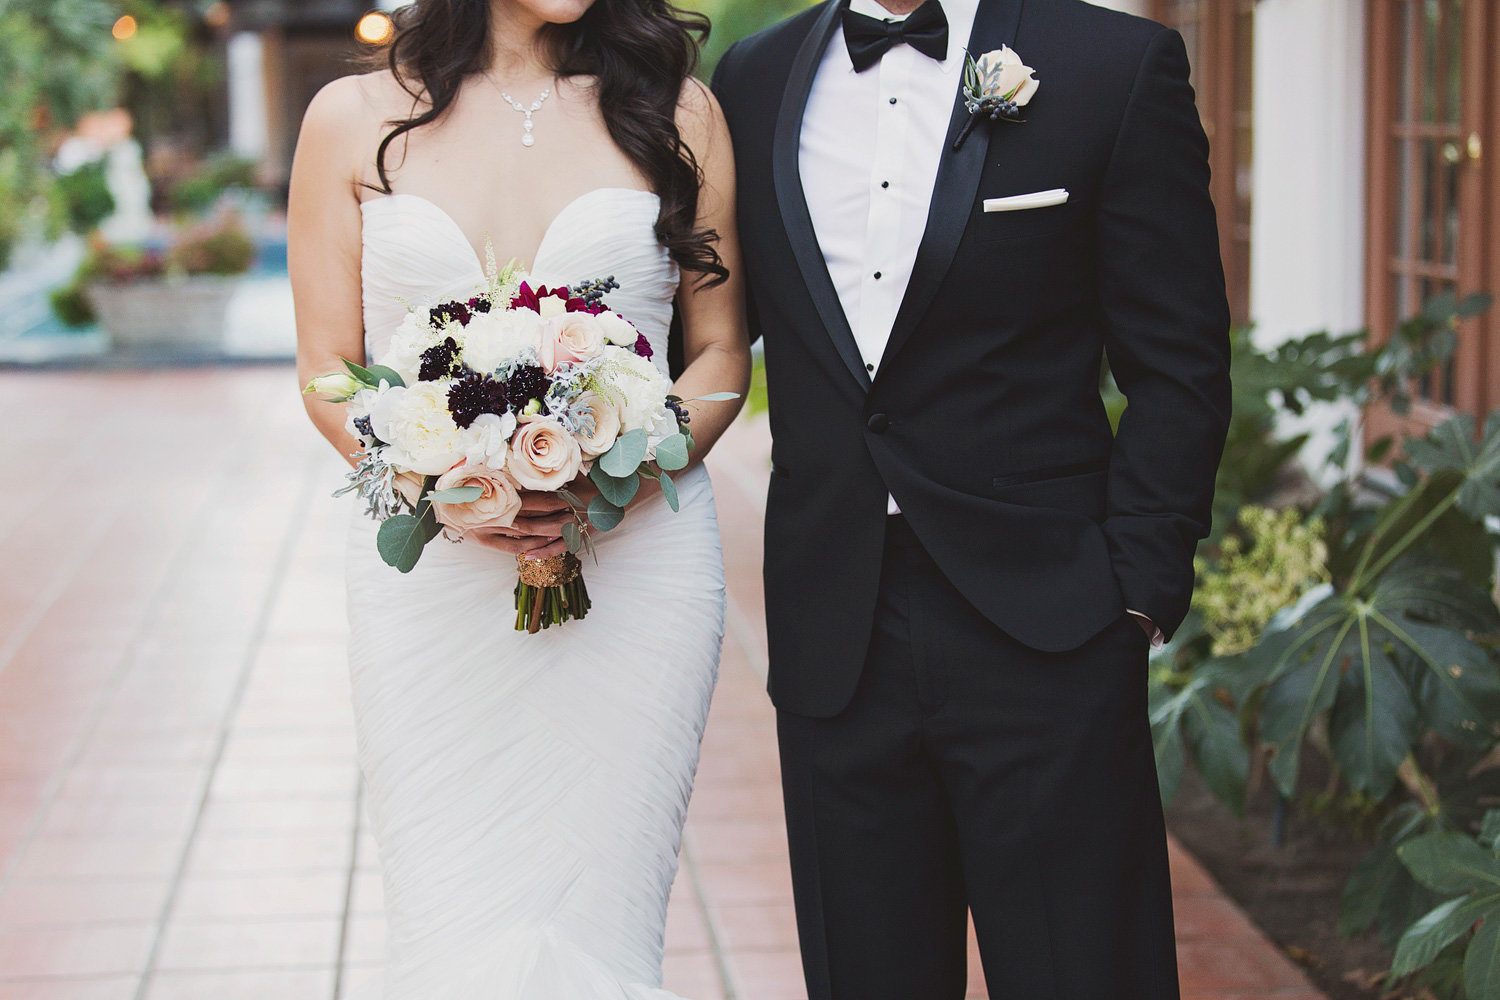 Bride and groom in black tie wedding at Rancho Las Lomas in Orange County.